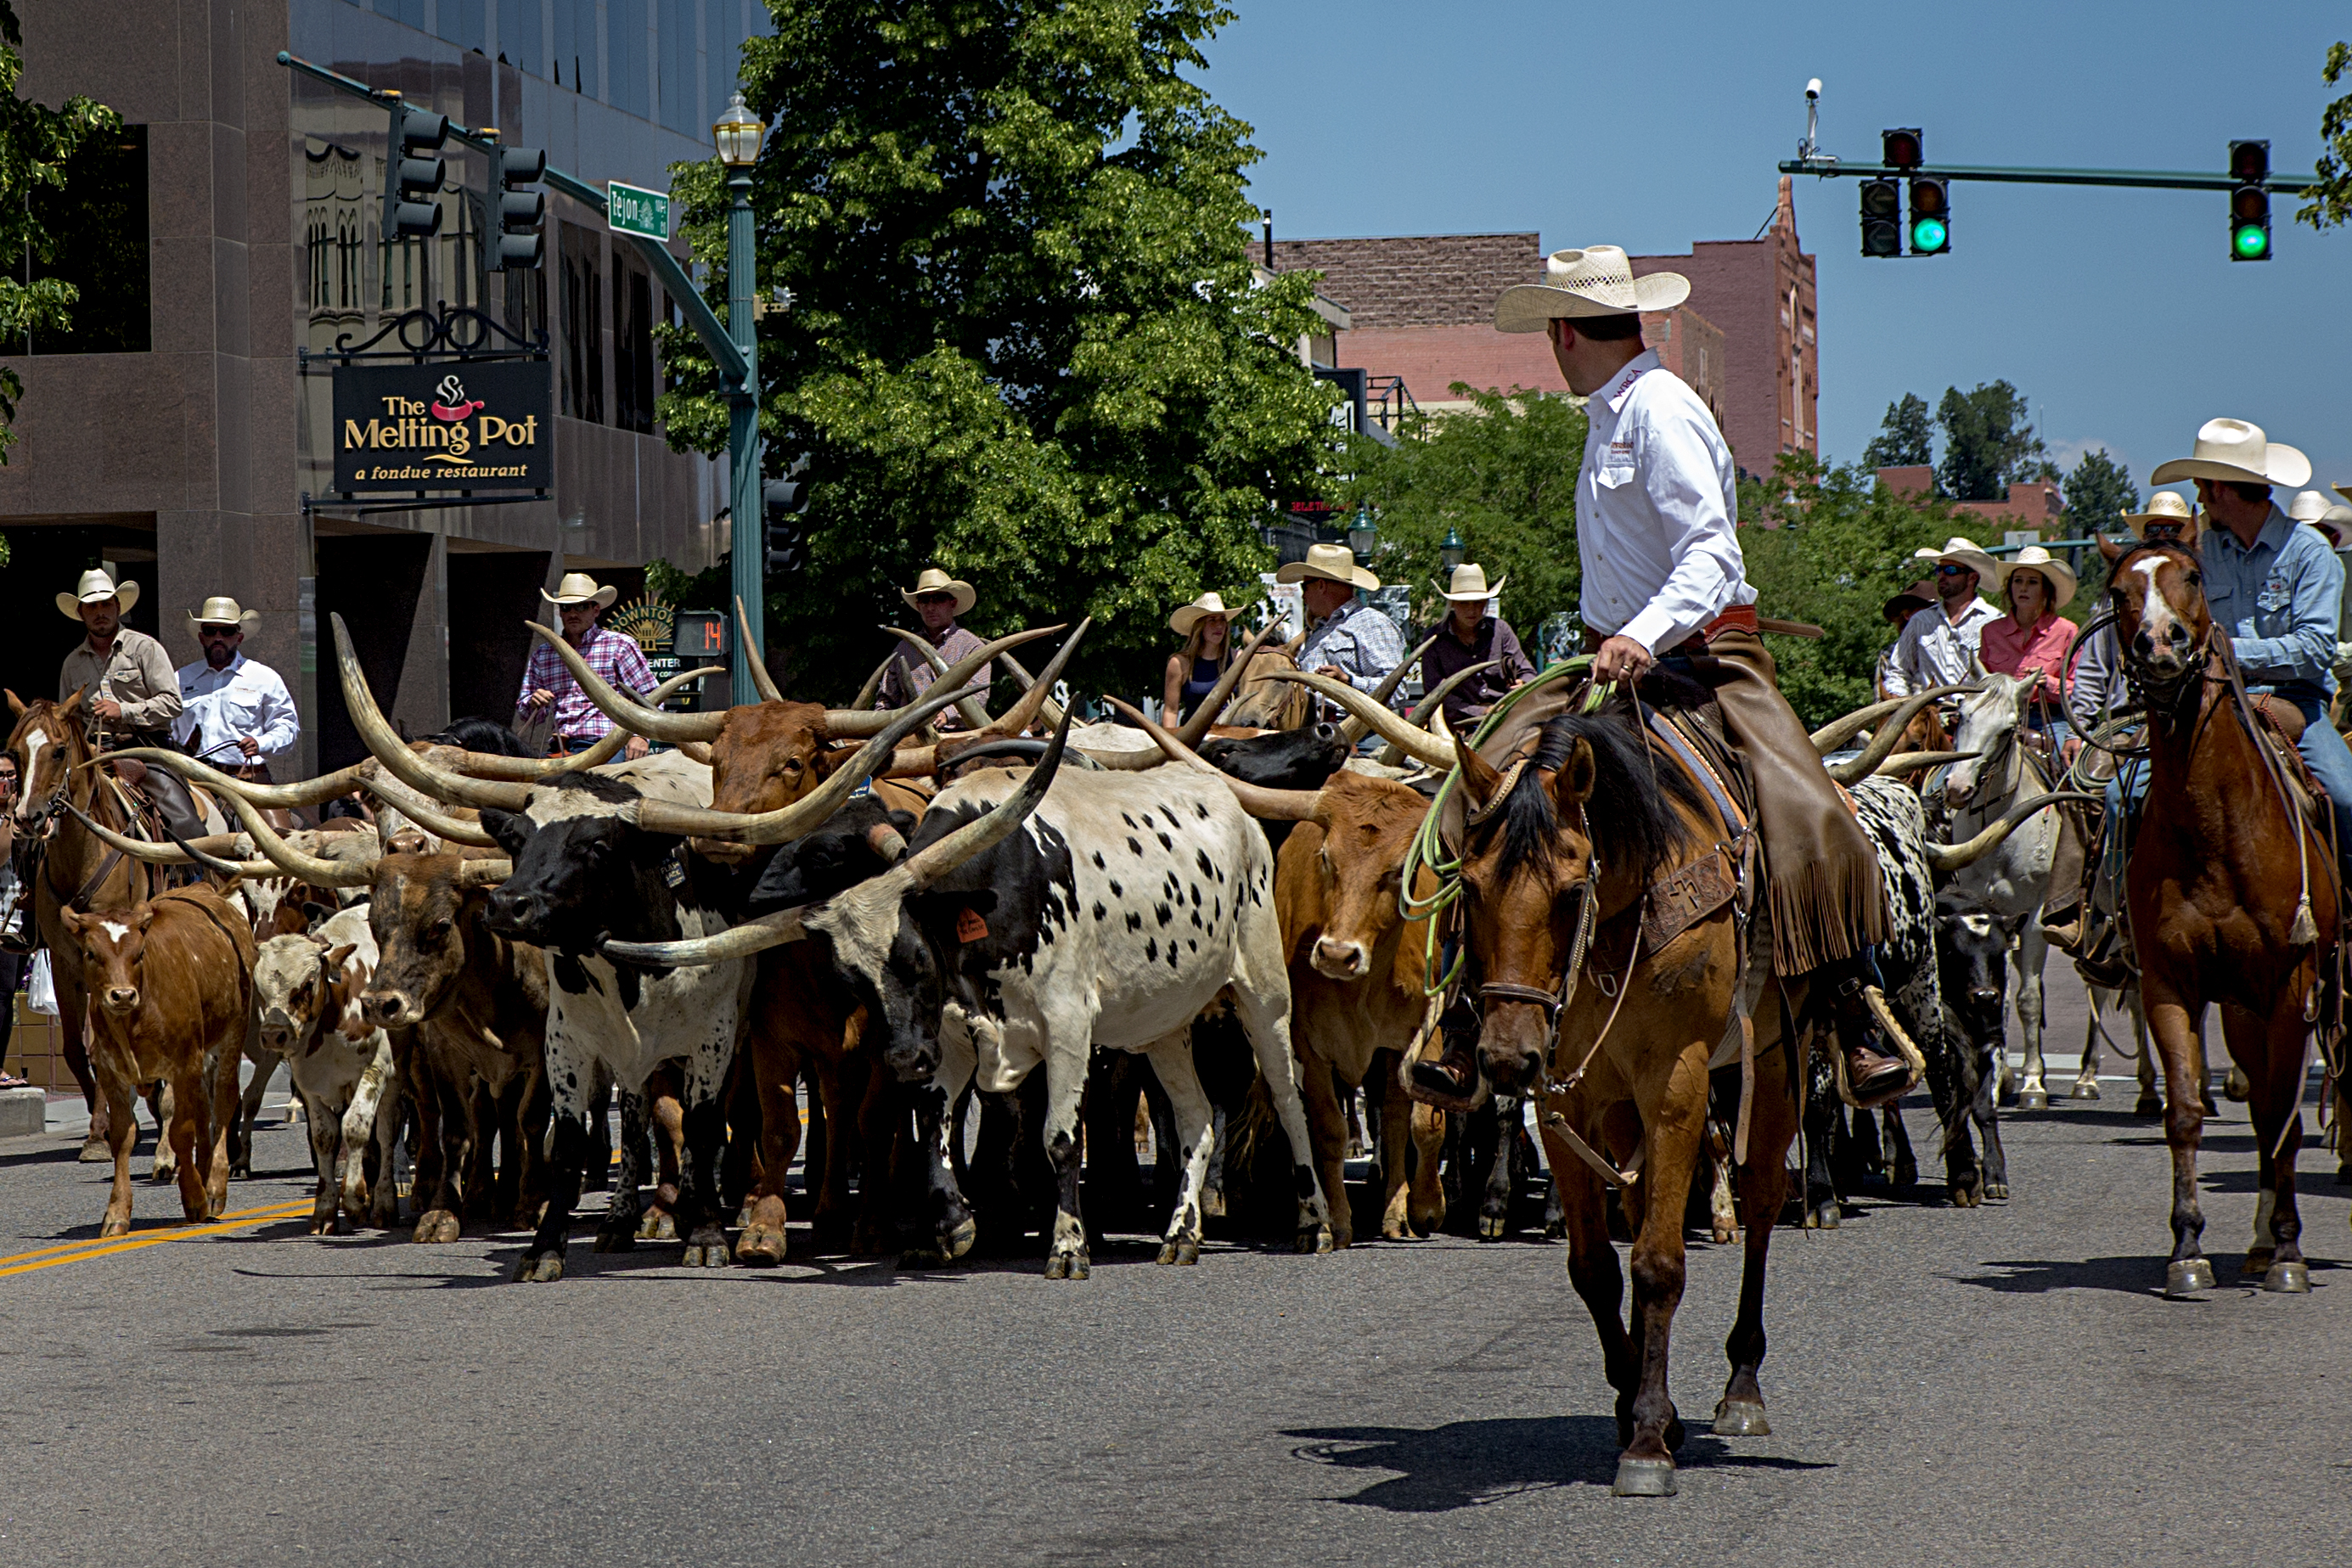 Cowboys keep an eye on a small herd of longhorn cattle lumbering down Tejon Street in Colorado Springs on Aug.  2, 2019. The parade kicks off the Ride for the Brand rodeo at the Norris Penrose Event Center this weekend.